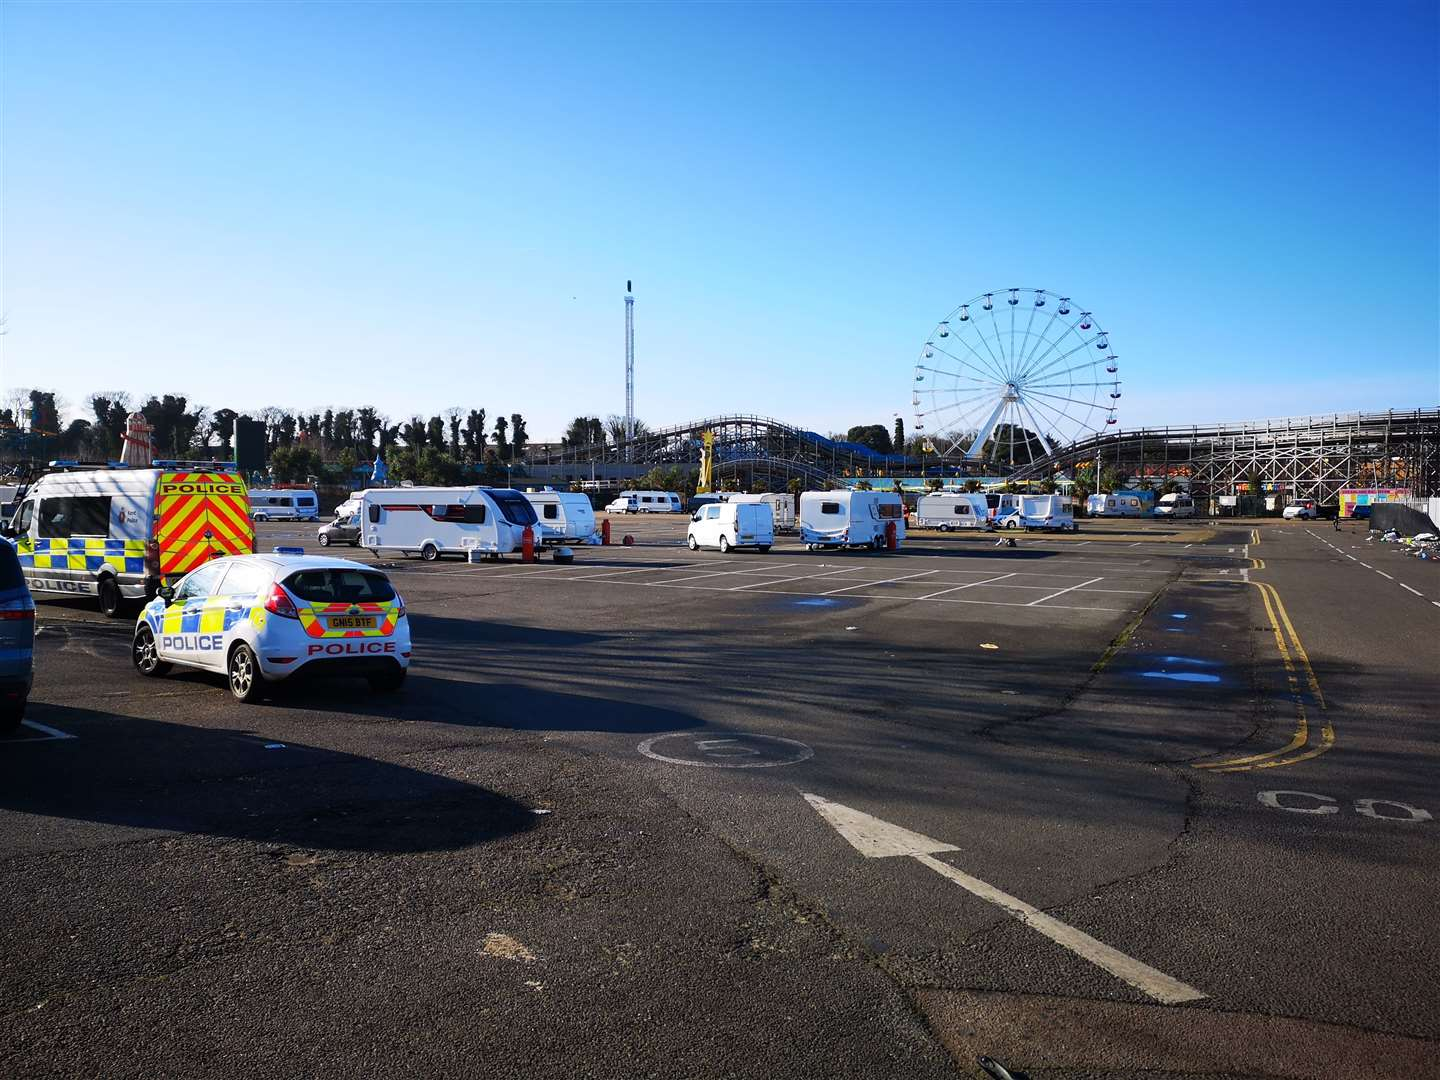 Travellers from the Dreamland car park in Margate were removed by council teams and the police